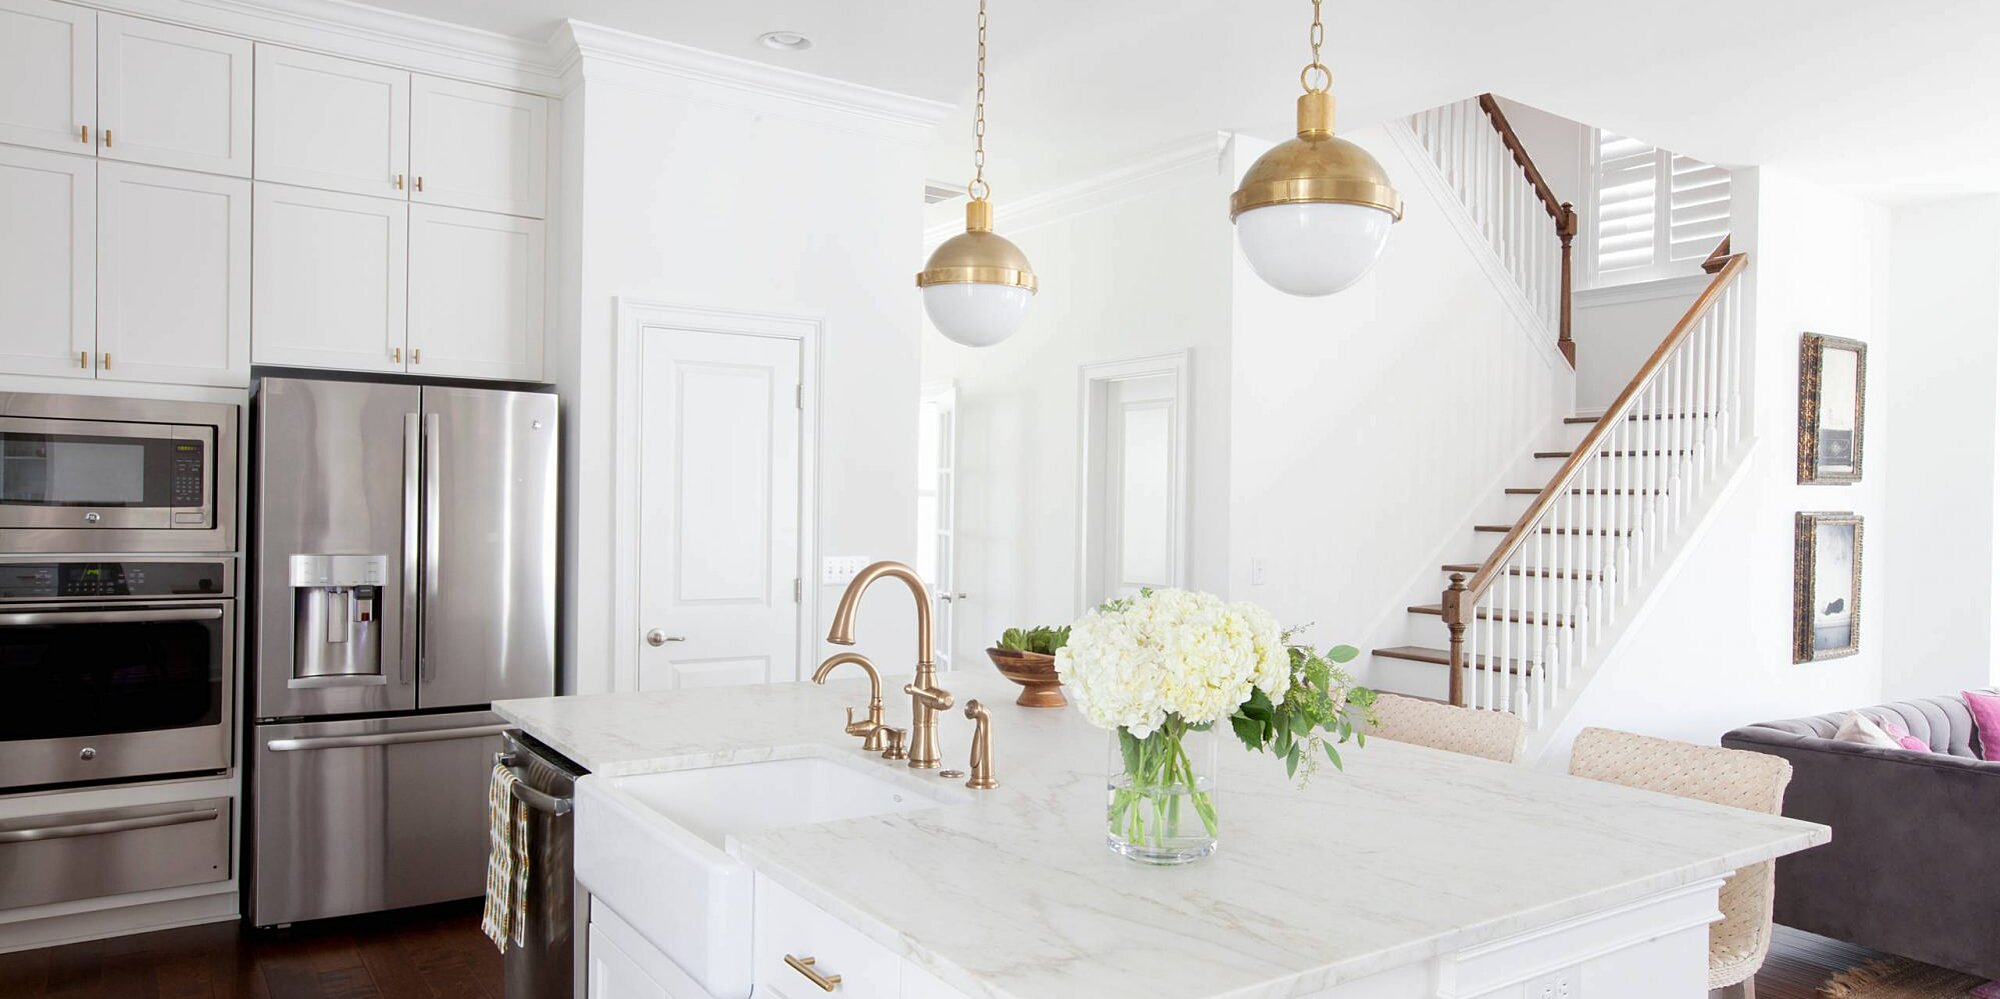 These Will Be the Top Kitchen Trends of 2021